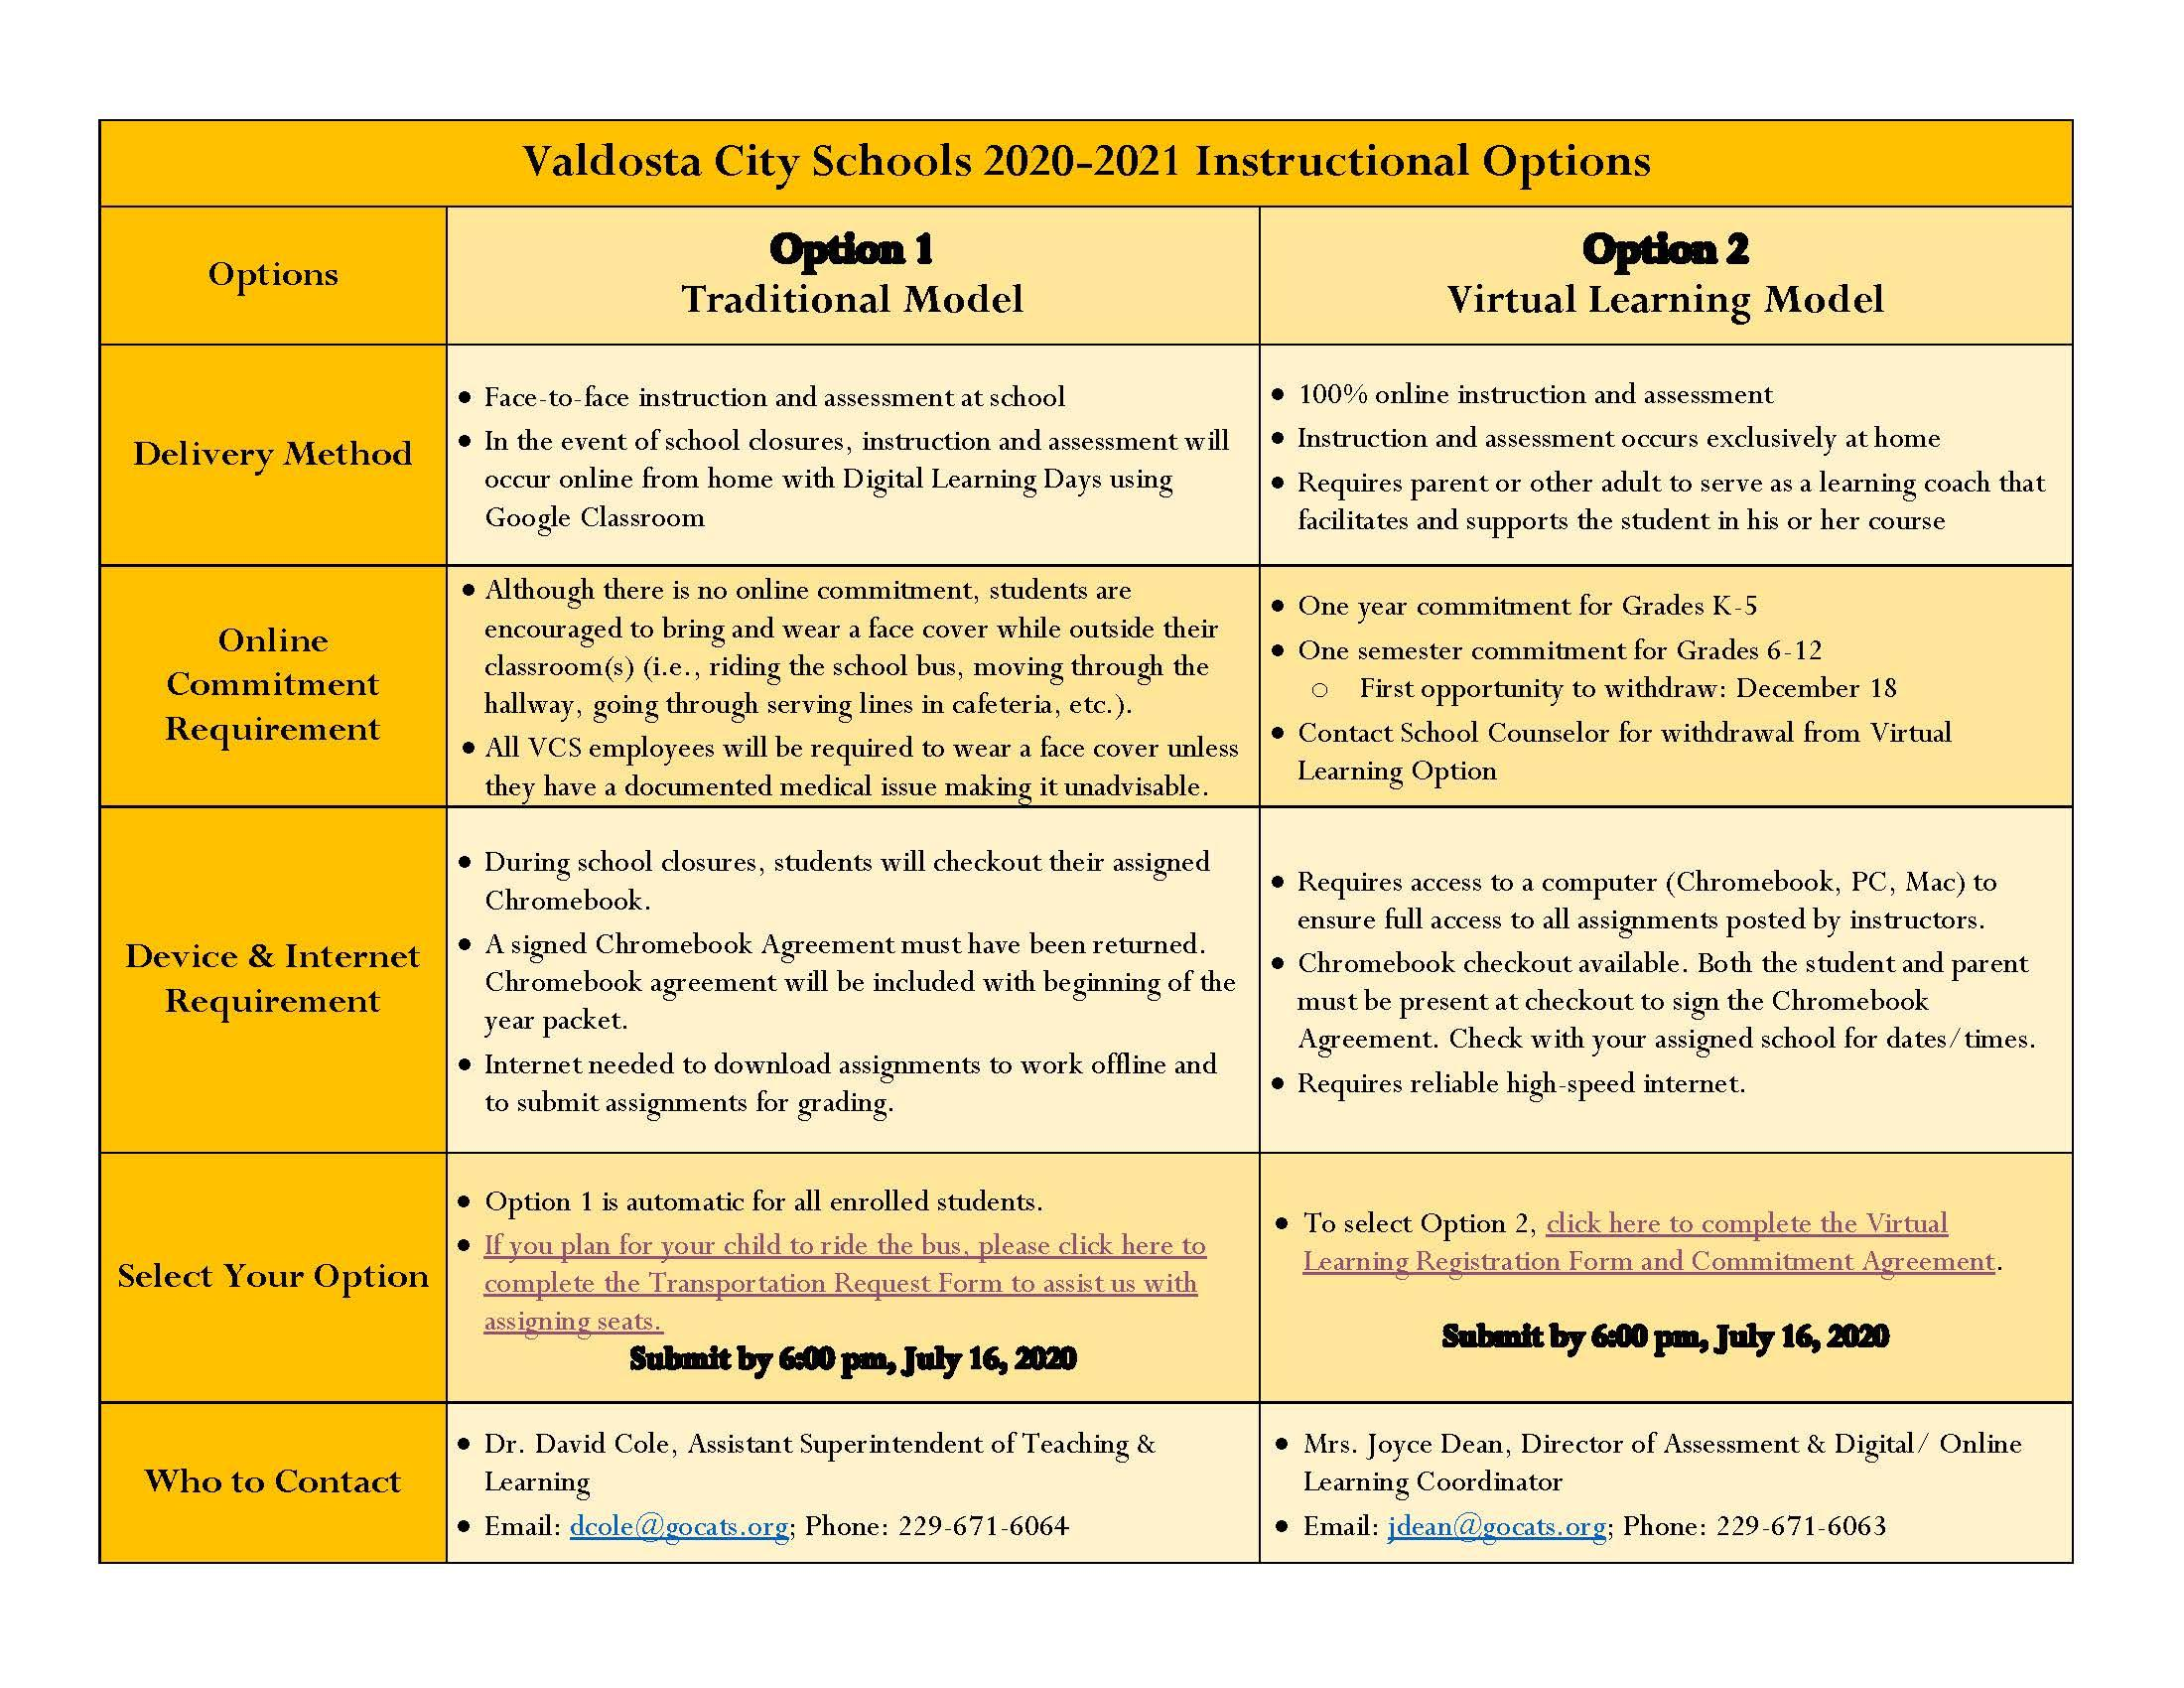 VCS 2020-2021 Instructional Options